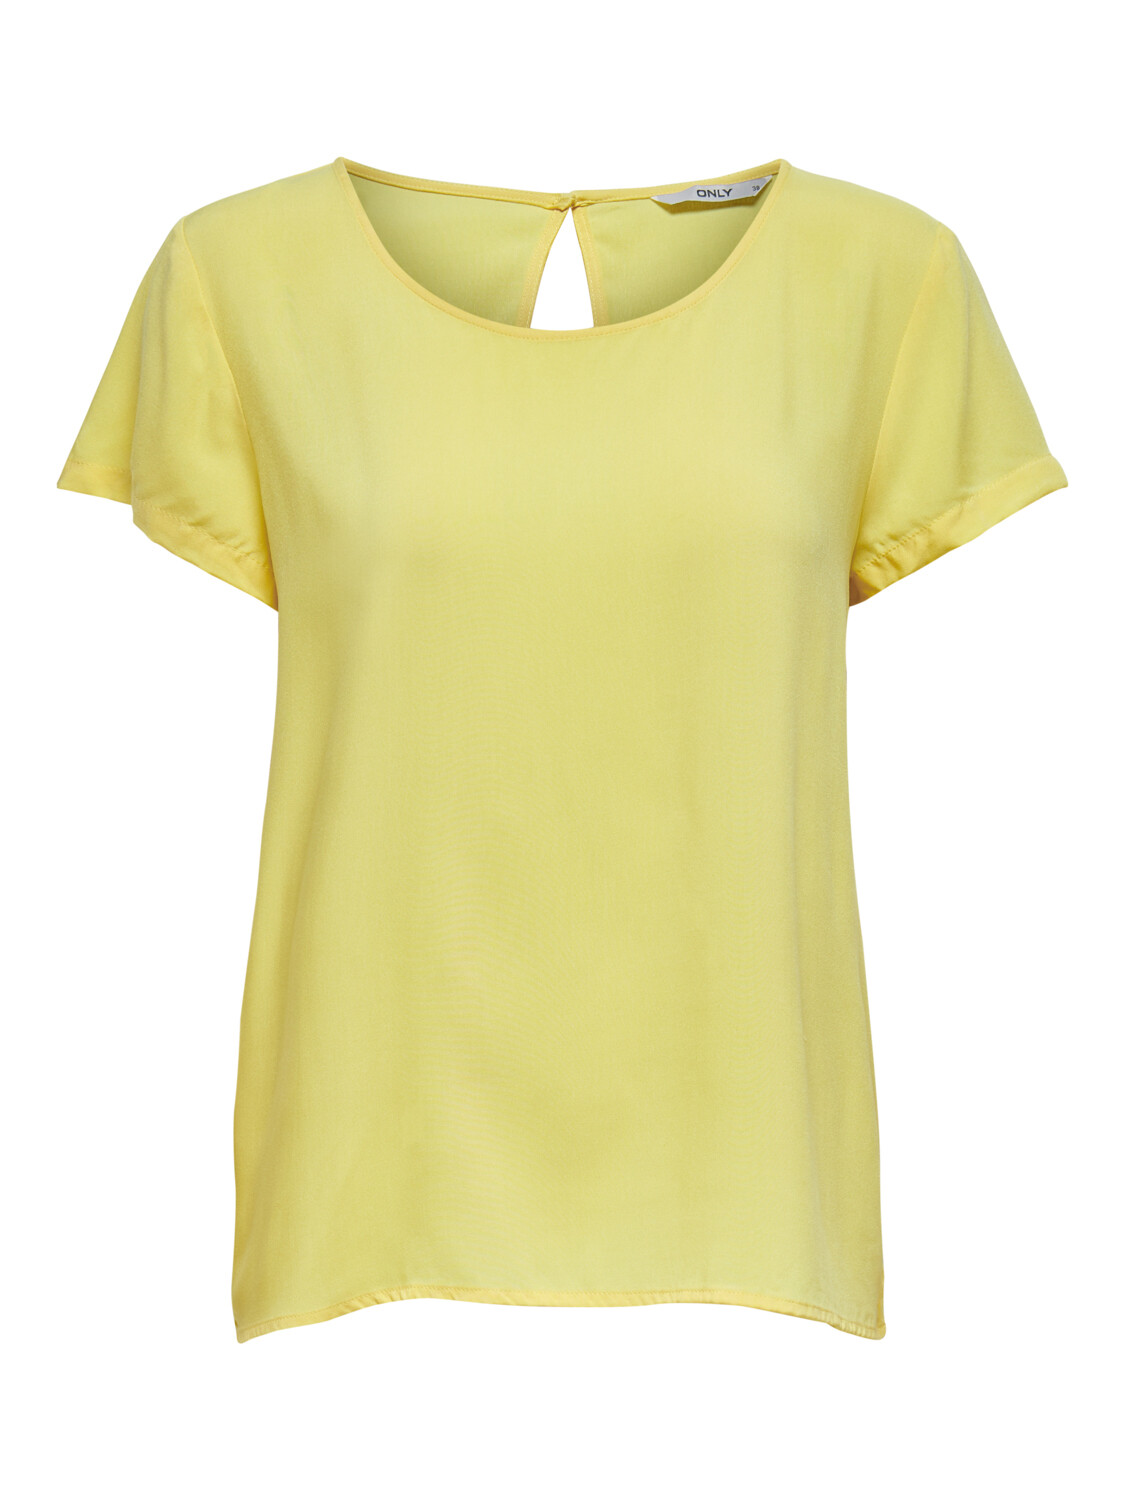 ONLFIRST ONE LIFE SS SOLID TOP WVN PINEAPPLE SLICE